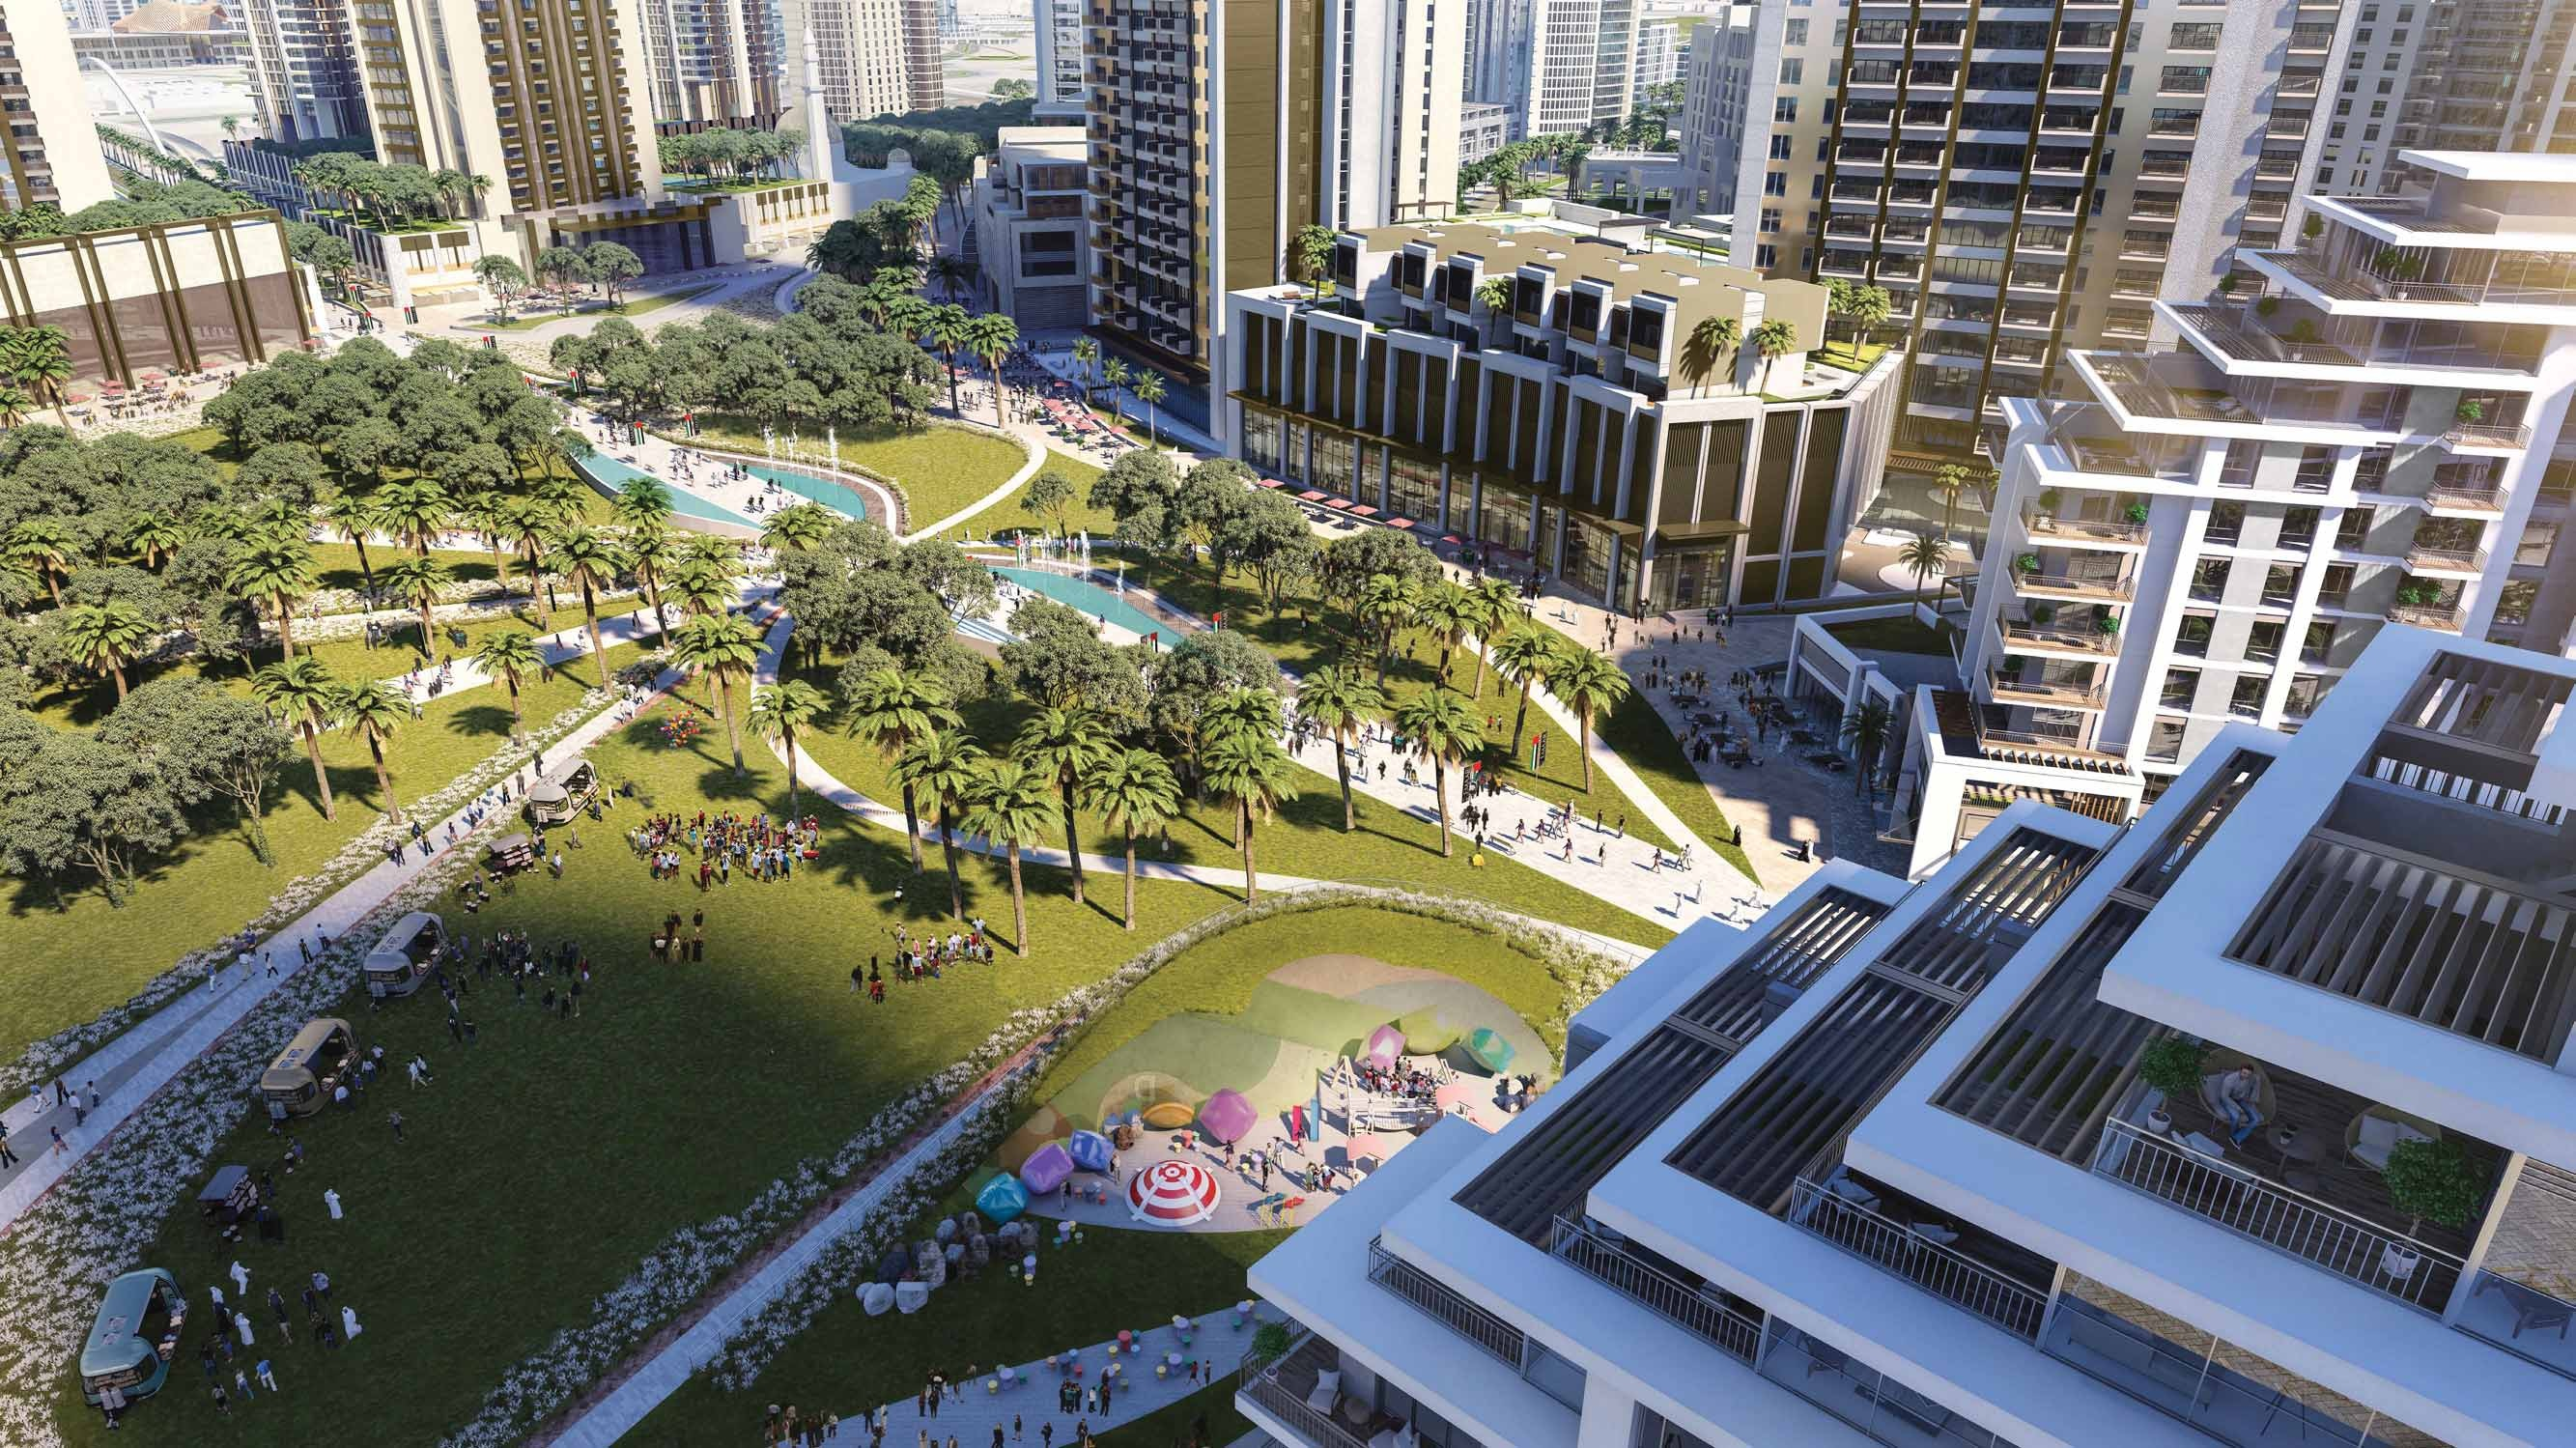 UNWIND IN LUSH GREEN SETTINGS/Island Park I at Dubai Creek Harbour